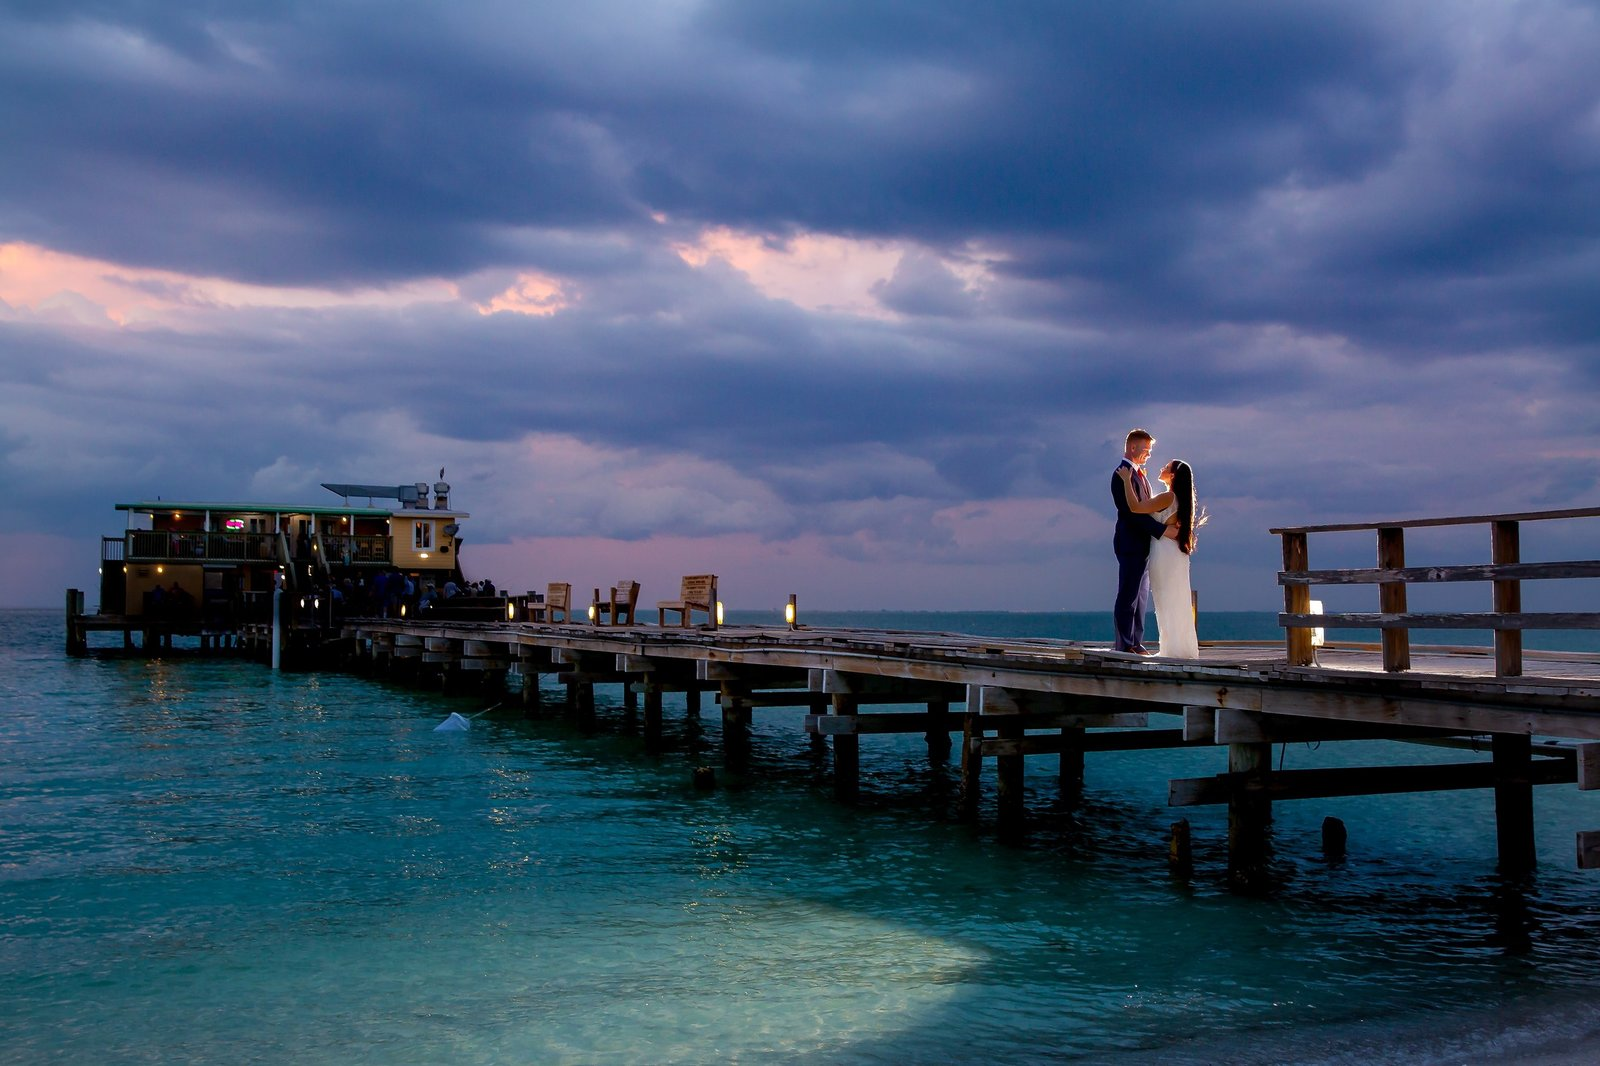 Wedding Photography at Rod and Reel Pier with bride and groom holding each other at sunset with backlight